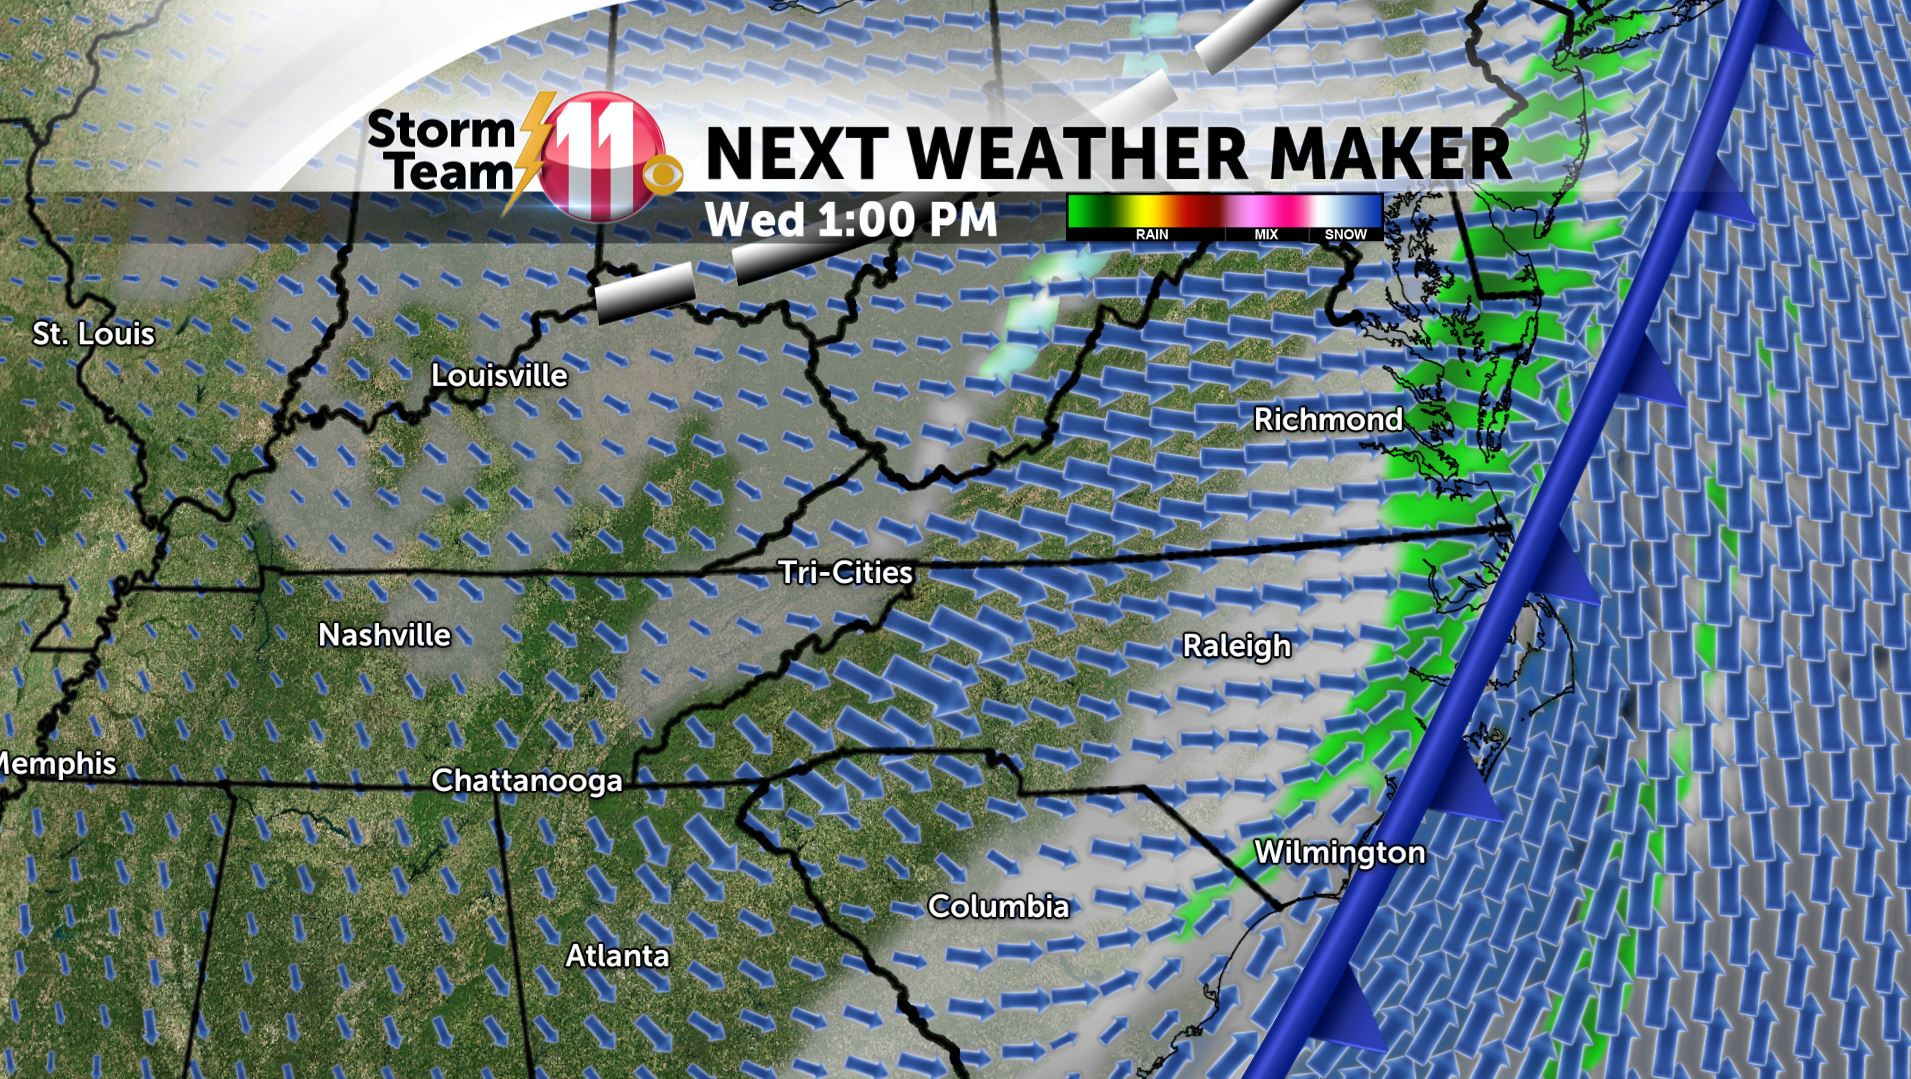 Mark's Weather Blog: Showers end tonight- Mild Tuesday